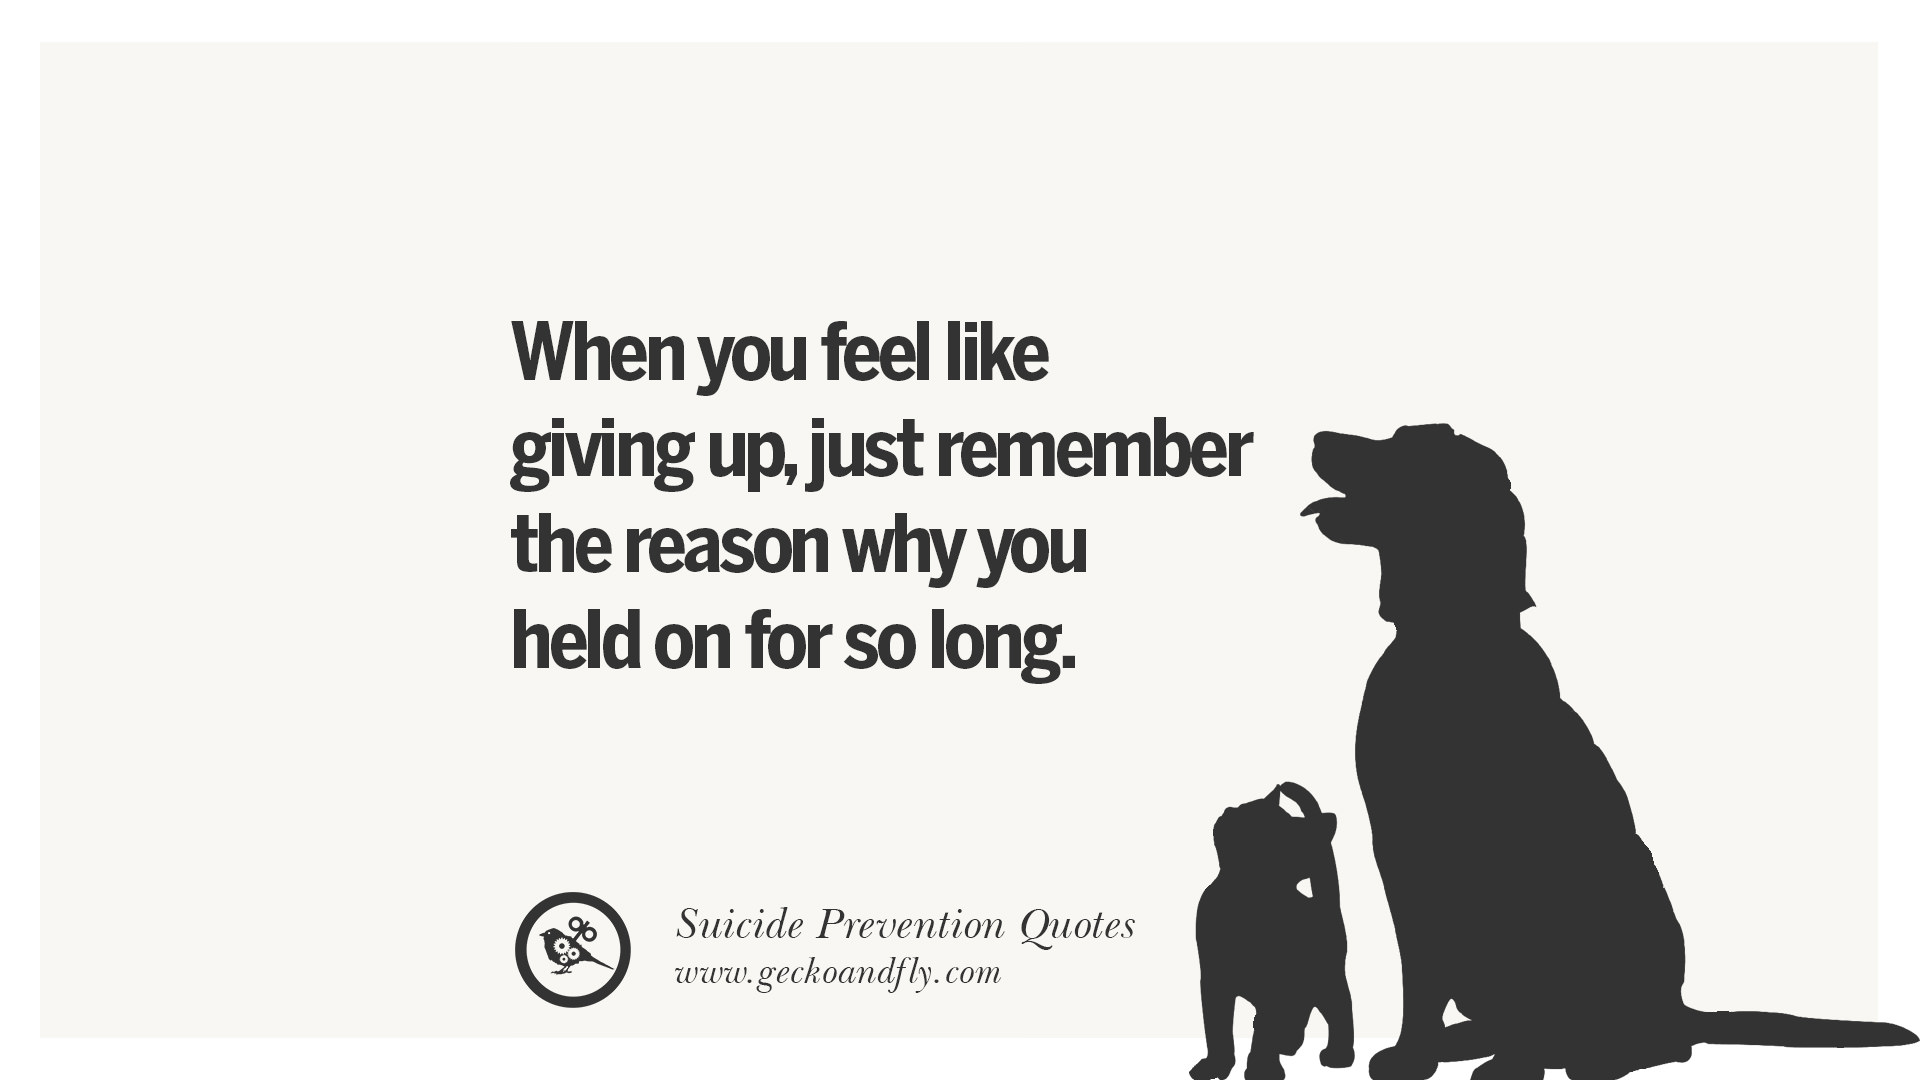 Suicide Prevention Quotes 30 Helpful Suicidal Prevention Ideation Thoughts And Quotes